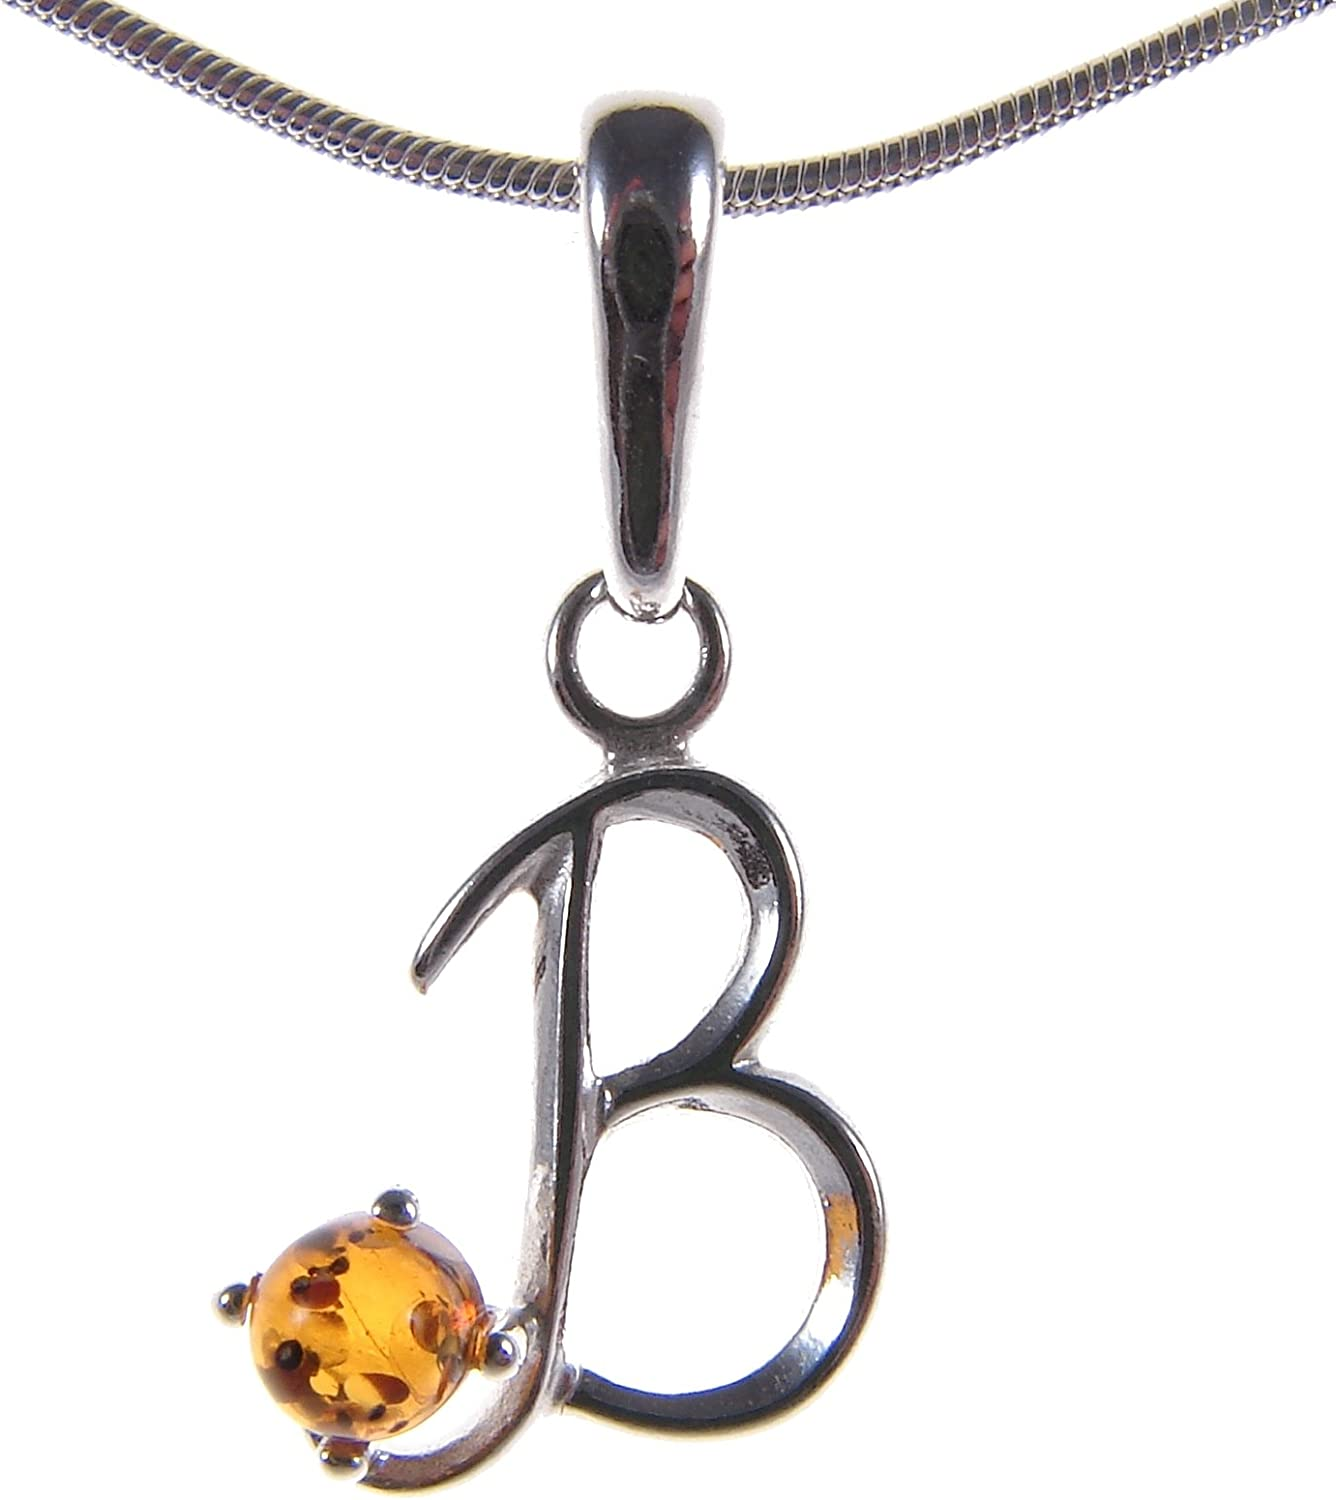 10 12 14 16 18 20 22 24 26 28 30 32 34 36 38 40 1mm ITALIAN SNAKE CHAIN BALTIC AMBER AND STERLING SILVER 925 ALPHABET LETTER B PENDANT NECKLACE